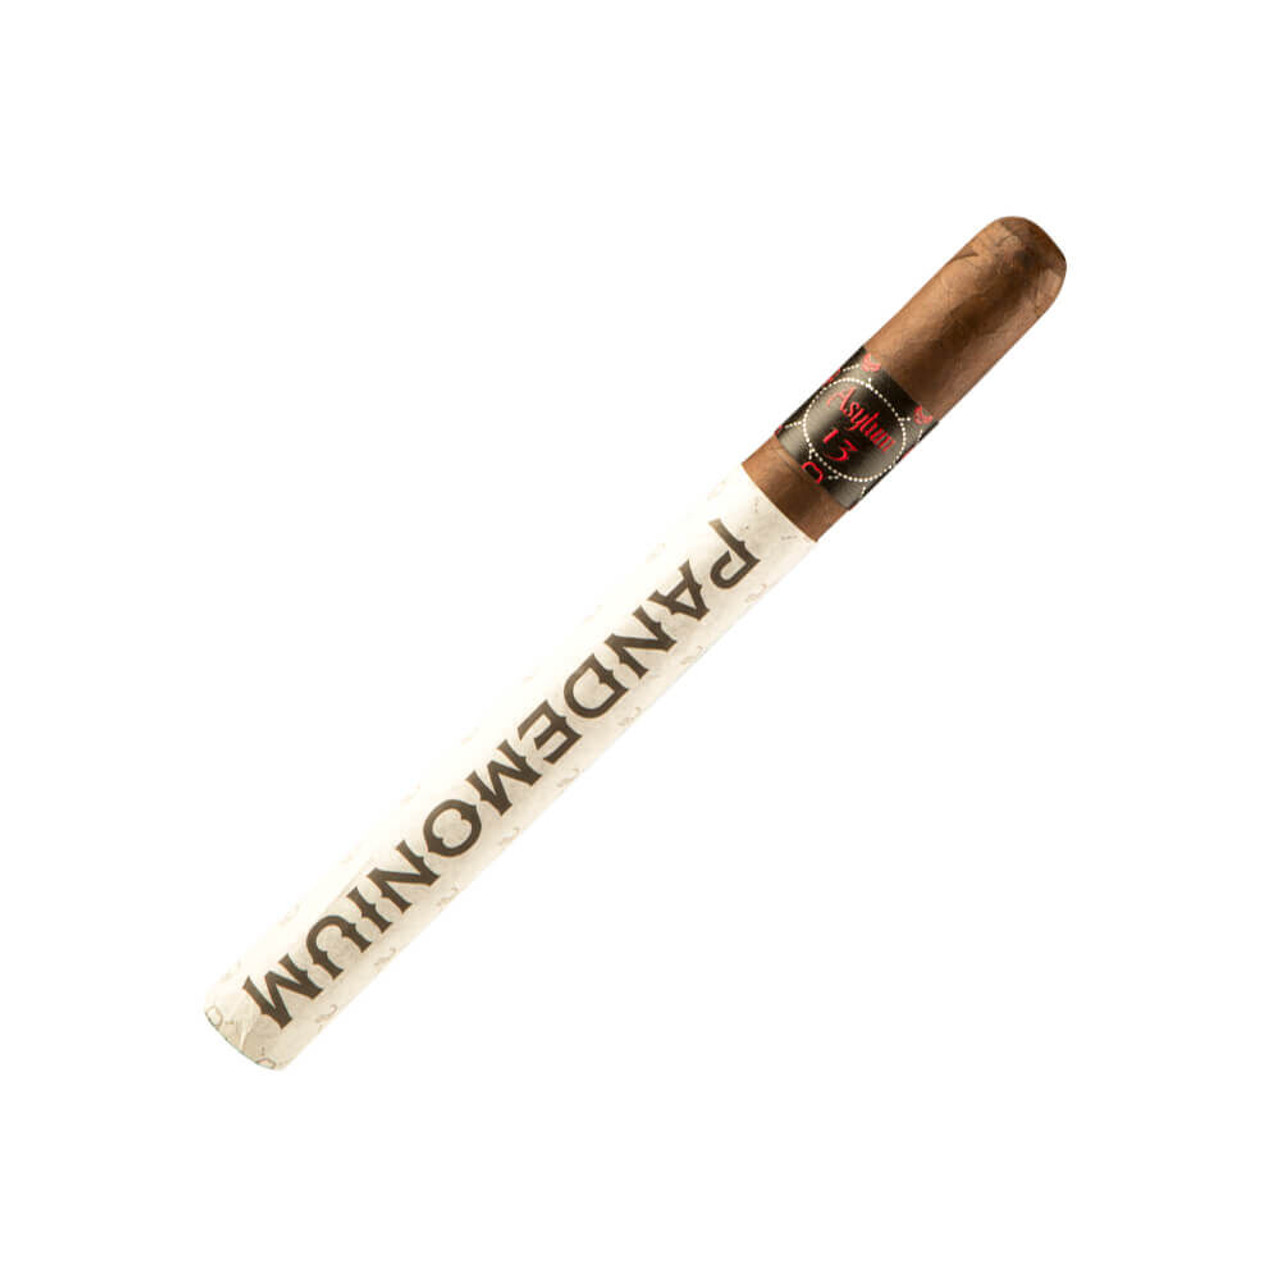 Asylum Pandemonium 8.50 X 52 Cigars - 8.5 x 52 (Bundle of 20)